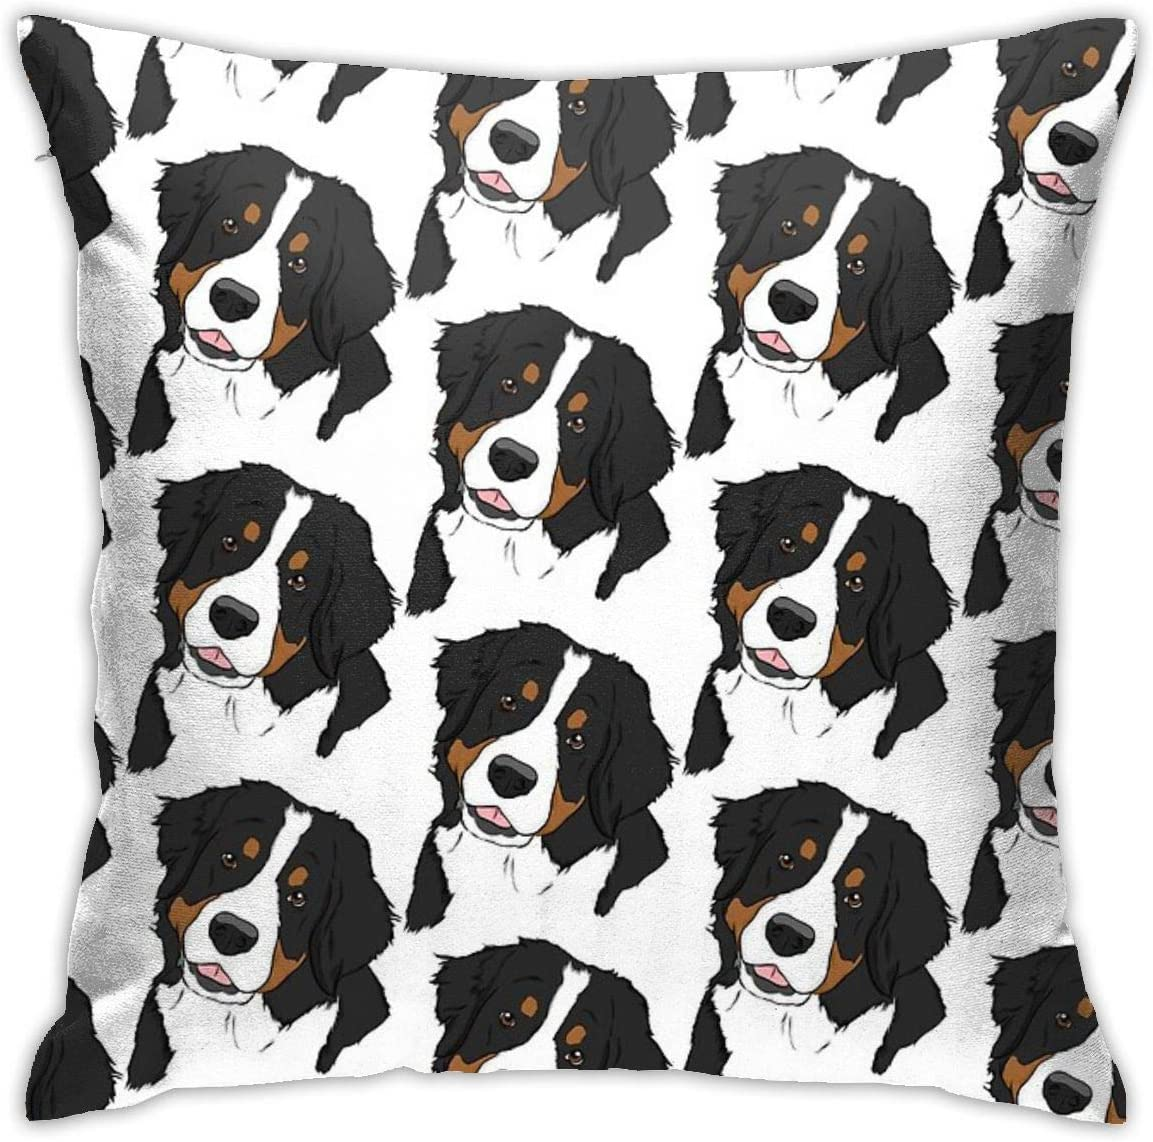 NYF Home Decor Bernese Mt. Dog Square Throw Pillow Cushion Covers Pillow Case, Soft Decorative Pillowcase for Couch Bed